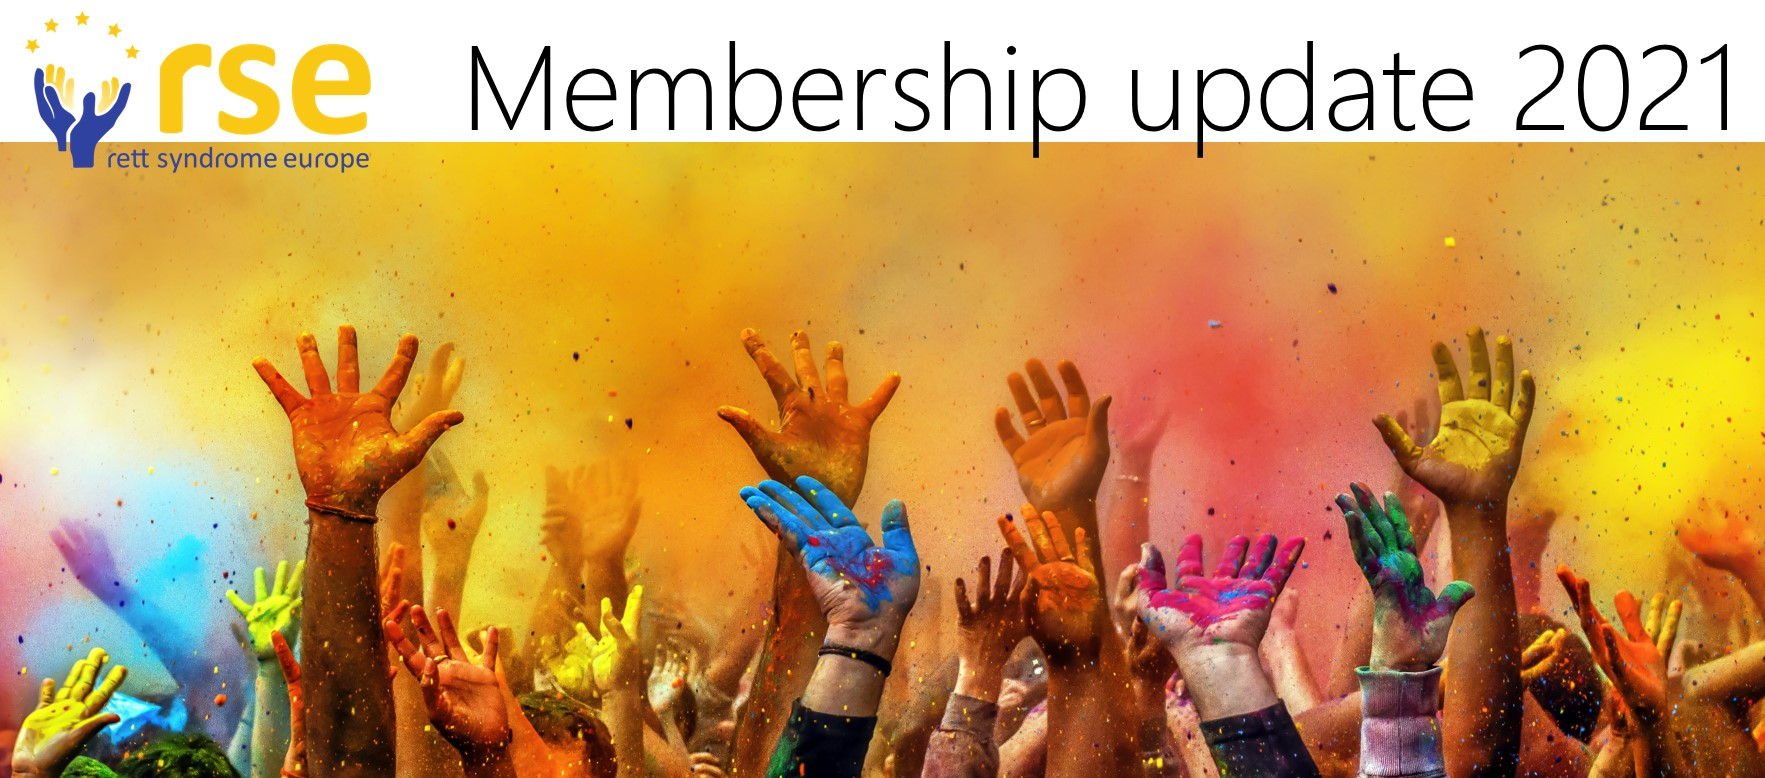 RSE Membership Survey results and next steps